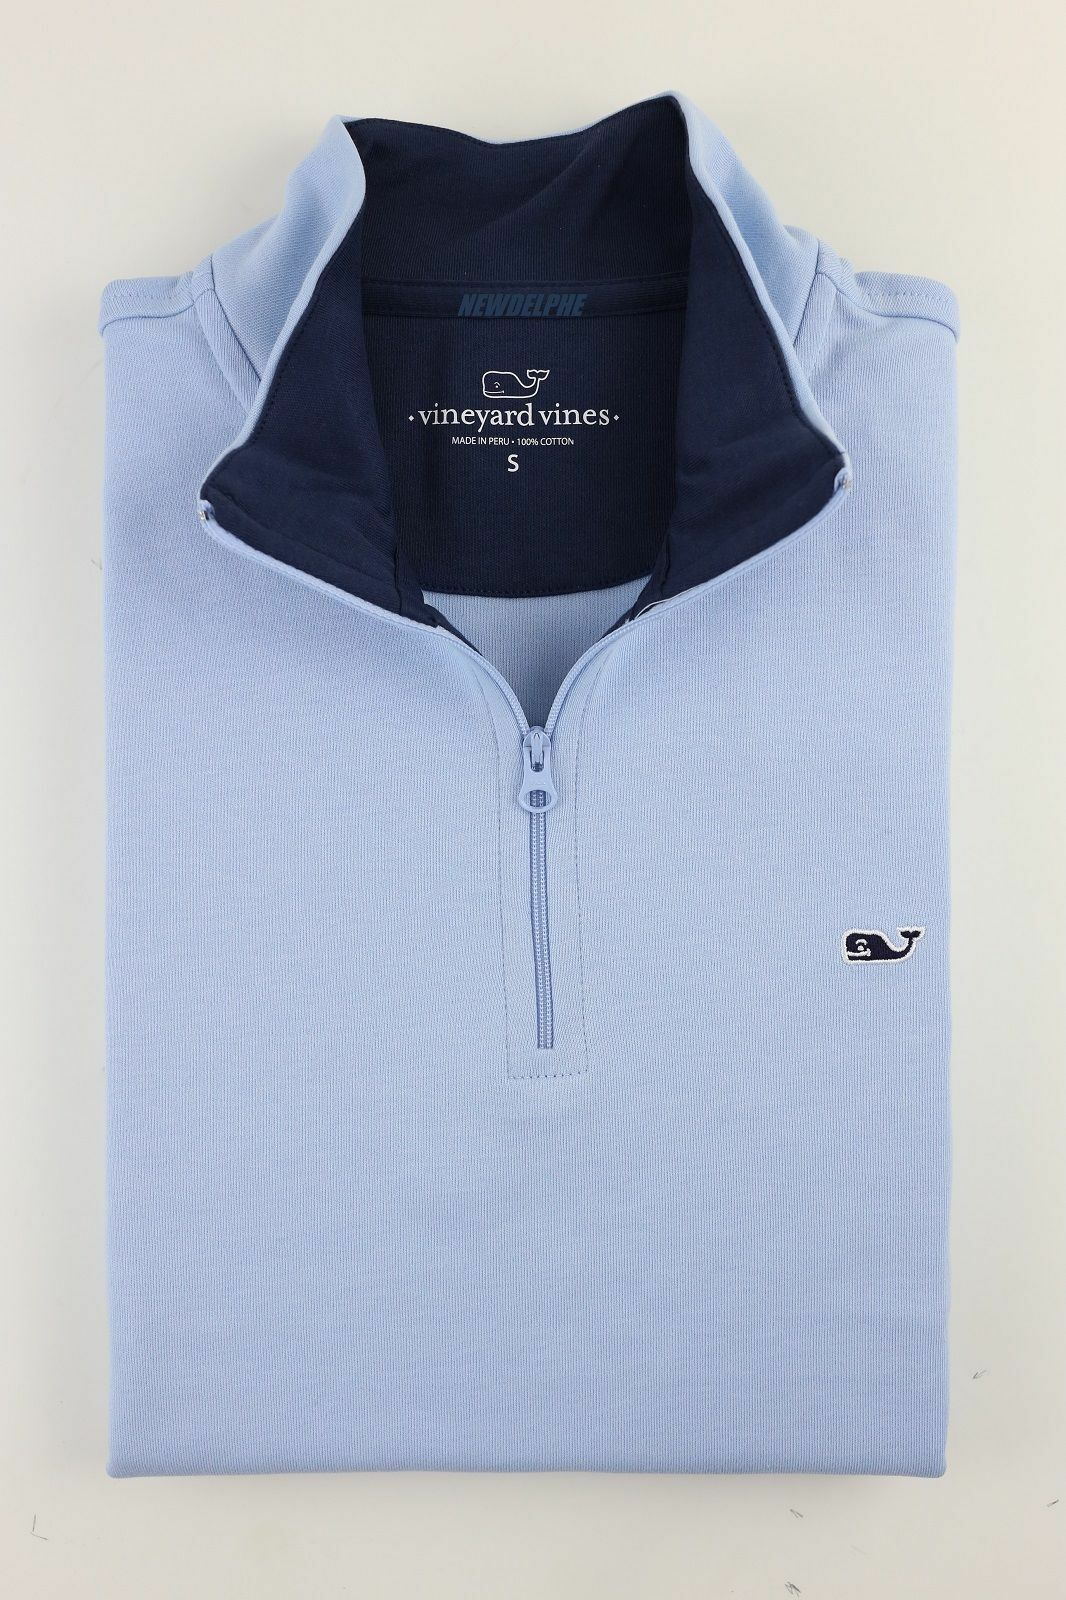 Vineyard Vines Men's Jersey 1 4 Zip Sweater Embroidered Whale Logo MSRP